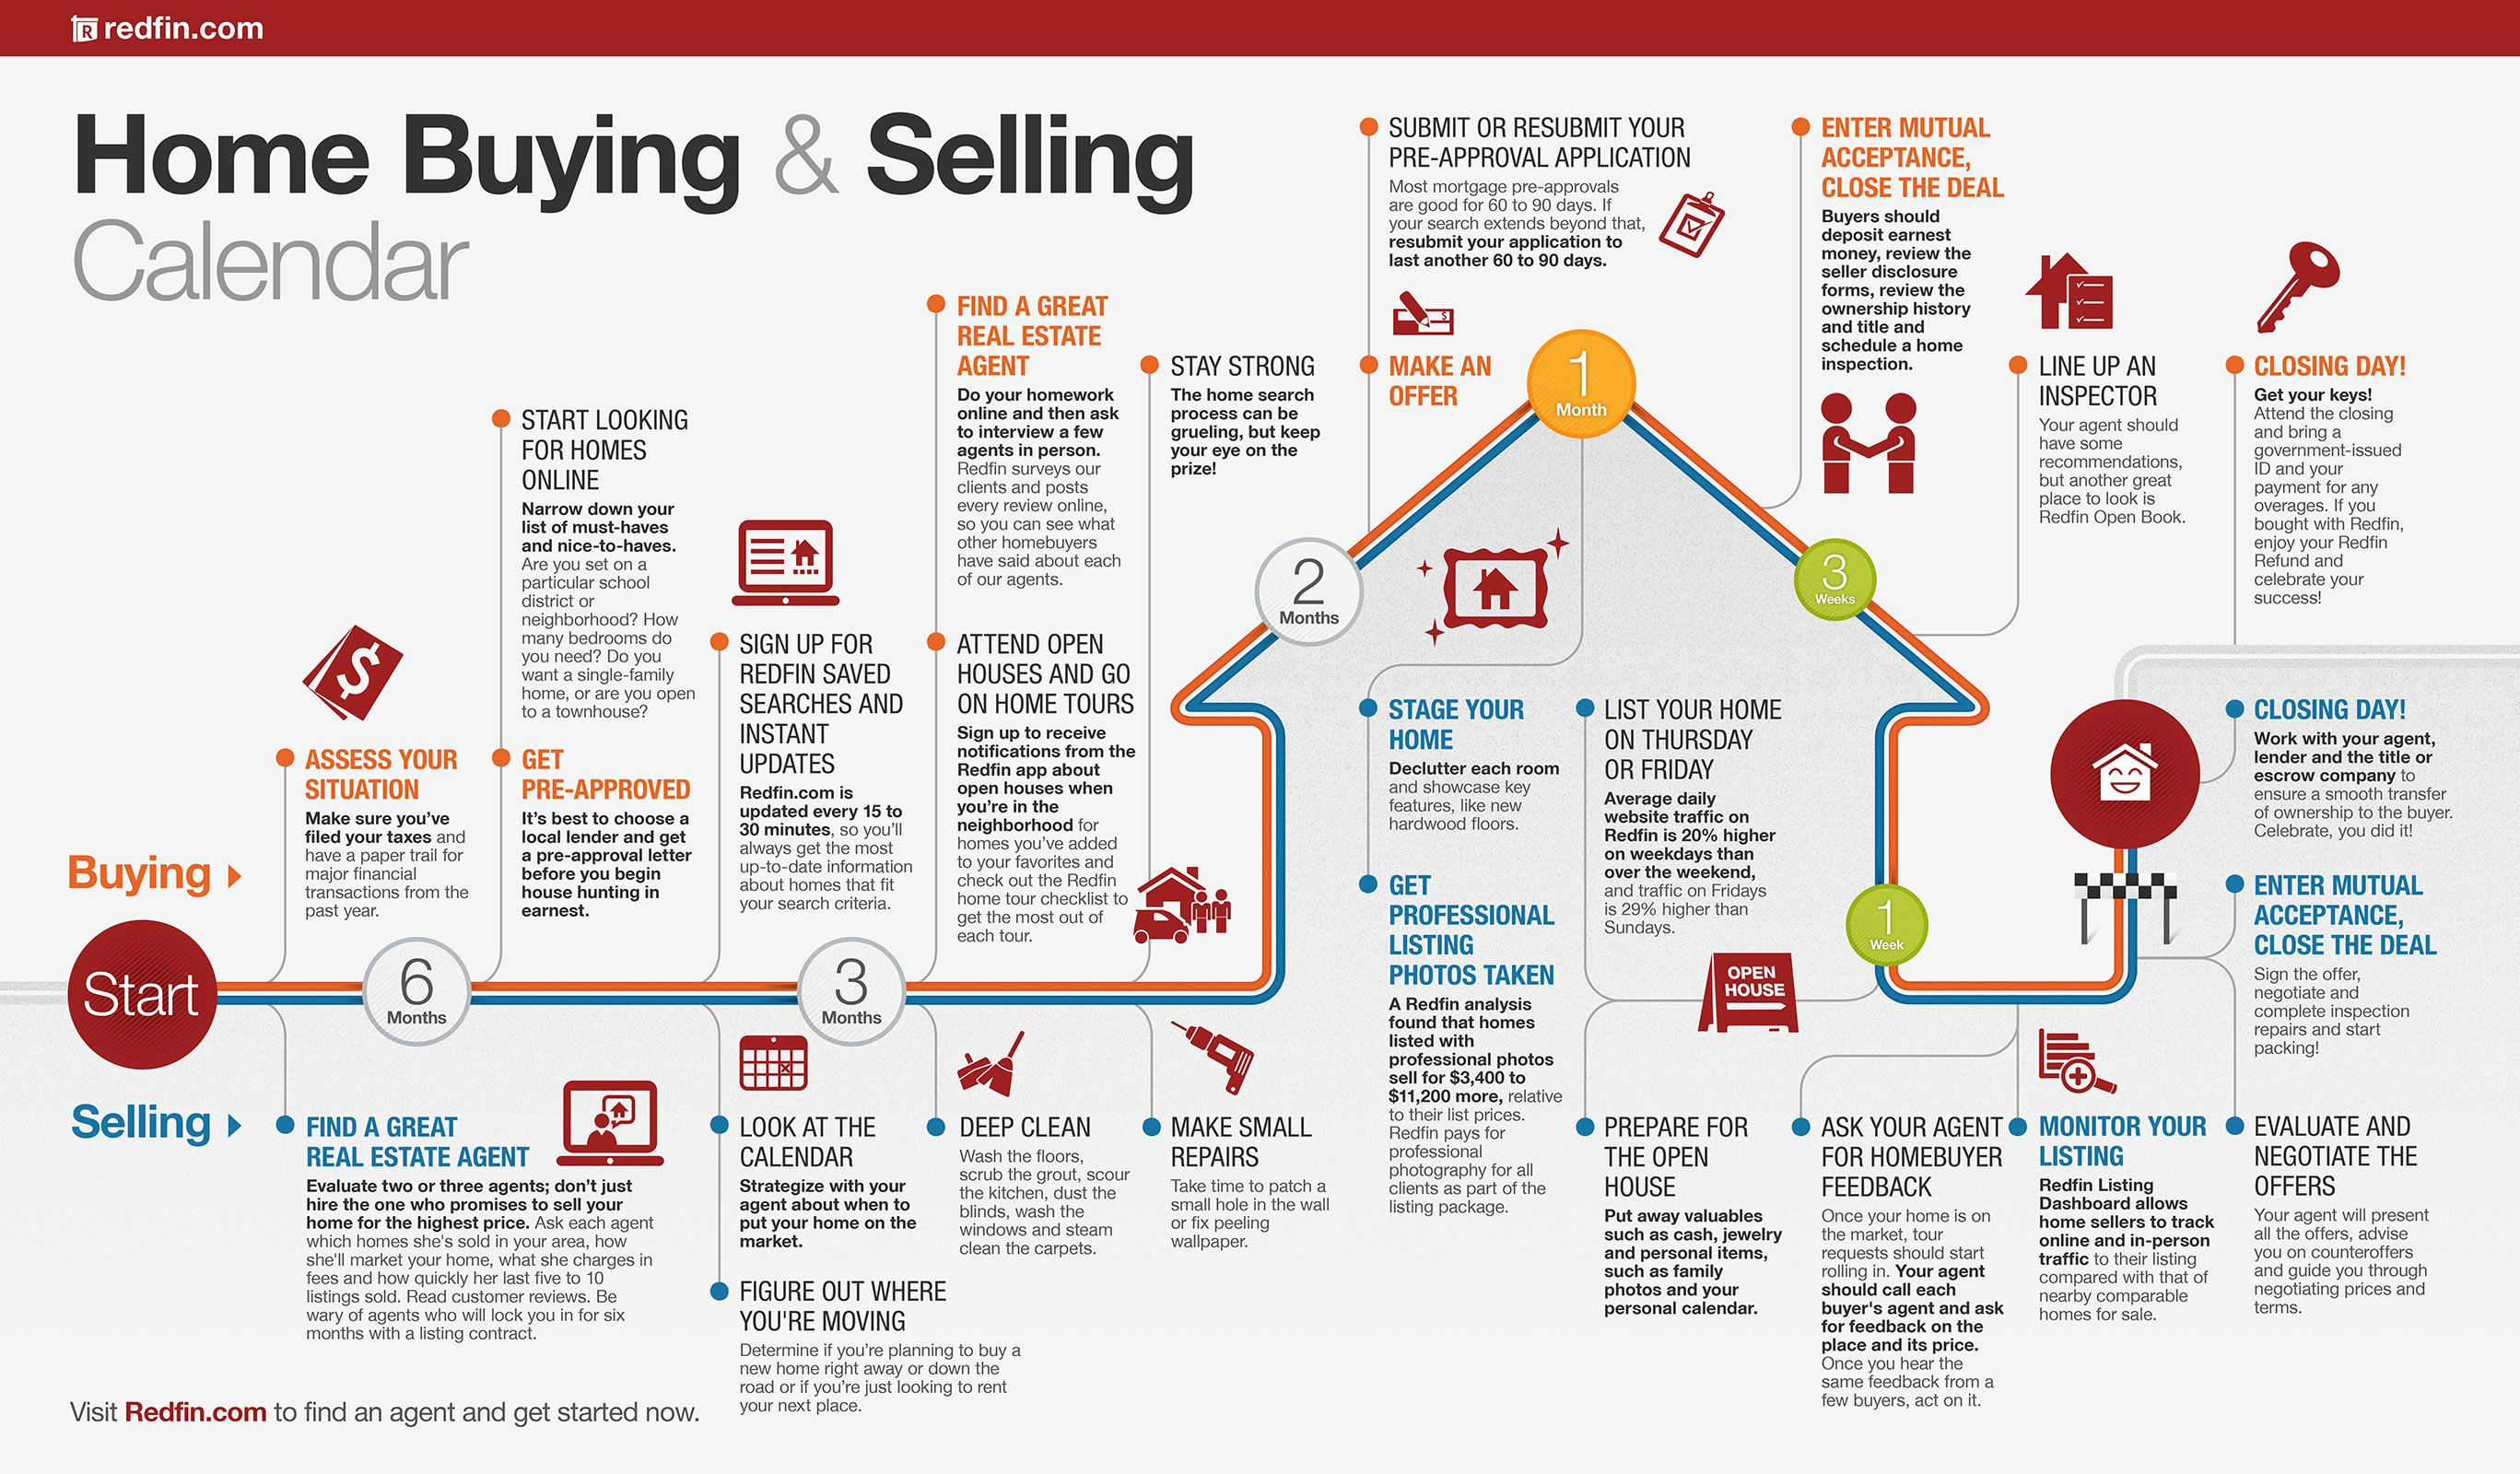 Selling your house checklist - Home Buying And Selling Calendar Redfin